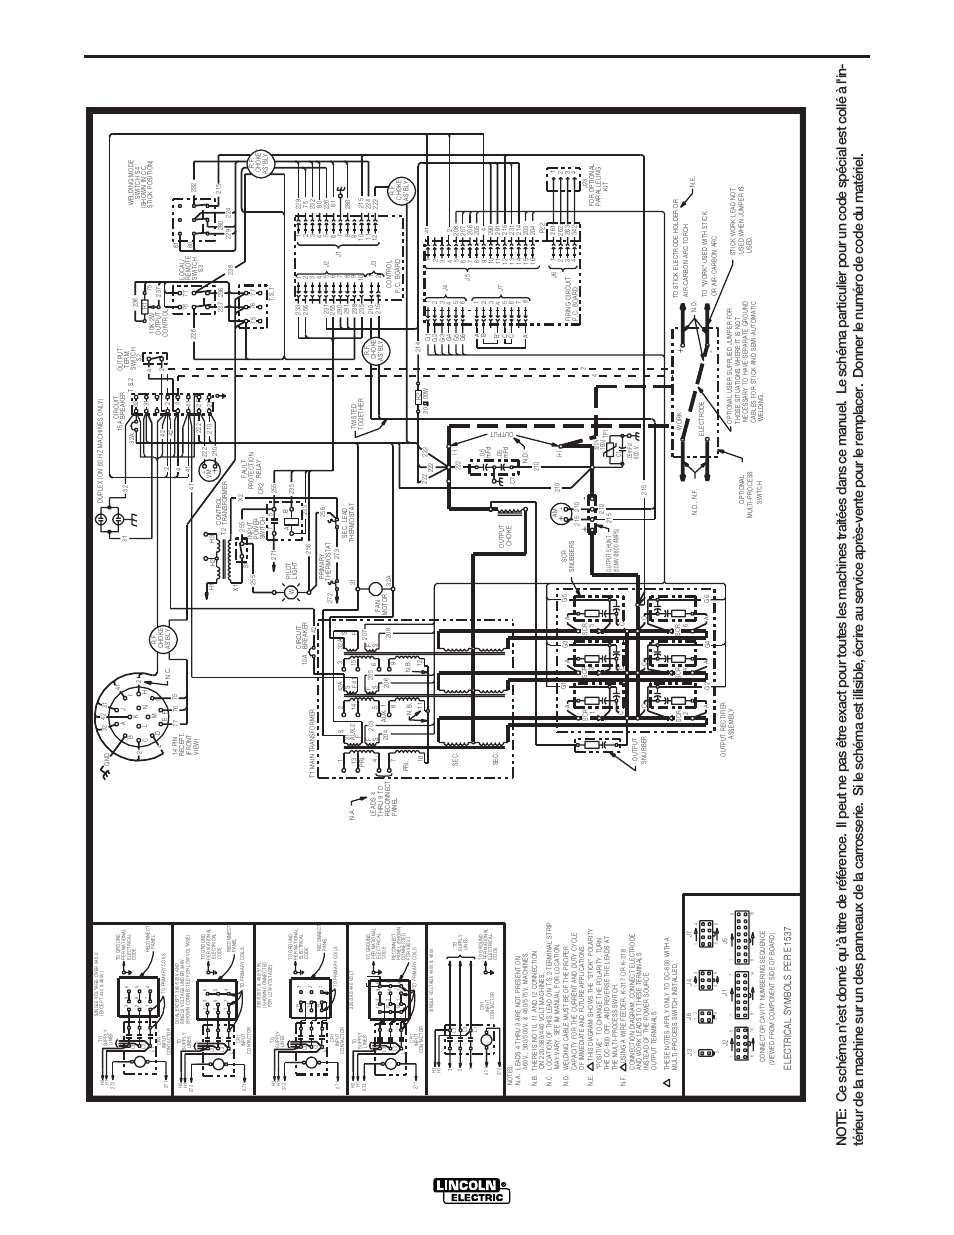 Lincoln Arc Welder 220 Wiring Diagram Free For You Ac 225 Stick Auto Forney